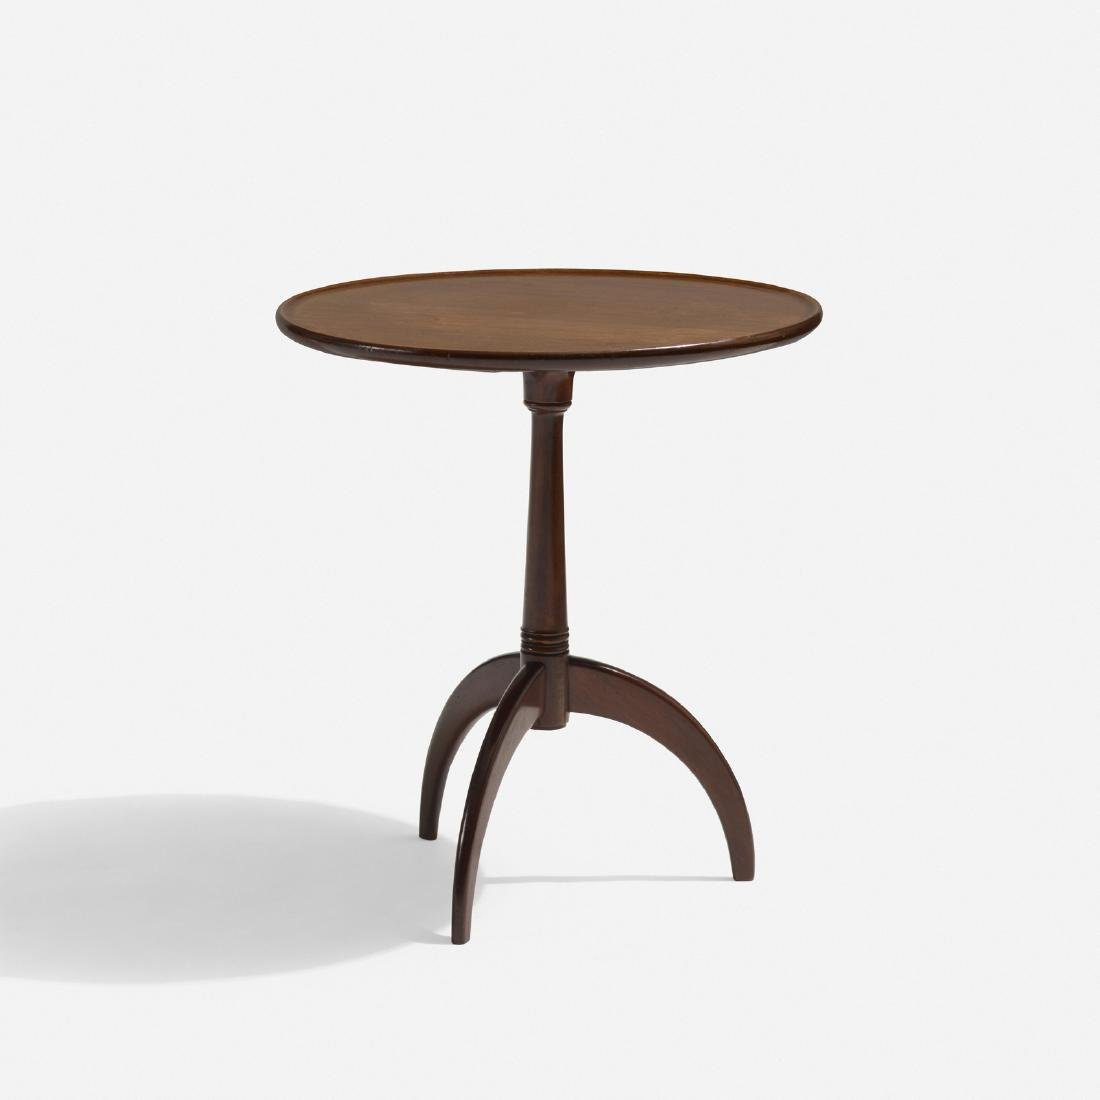 Frits Henningsen, occasional table